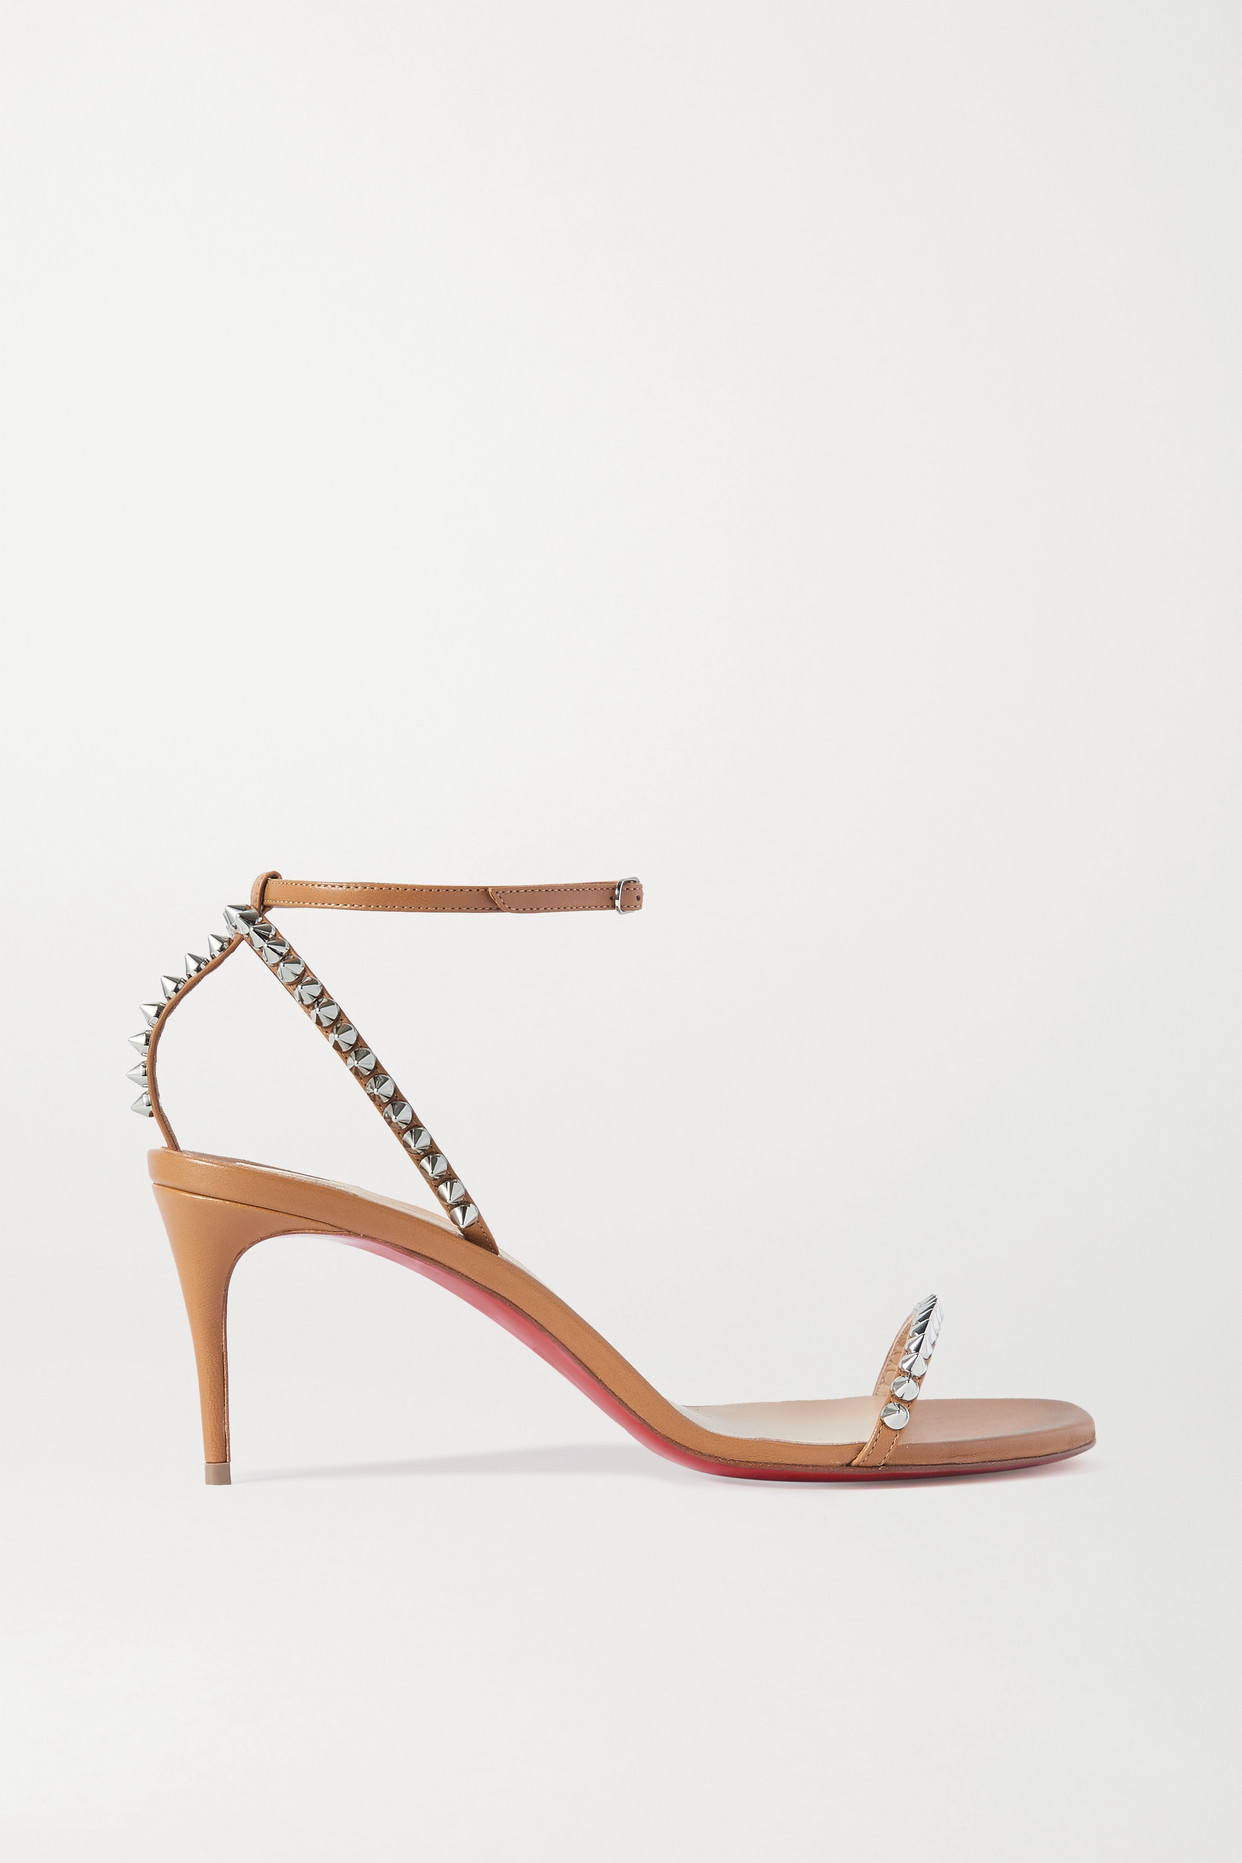 CHRISTIAN LOUBOUTIN - So Me 70 Studded Leather Sandals - Brown - IT35.5